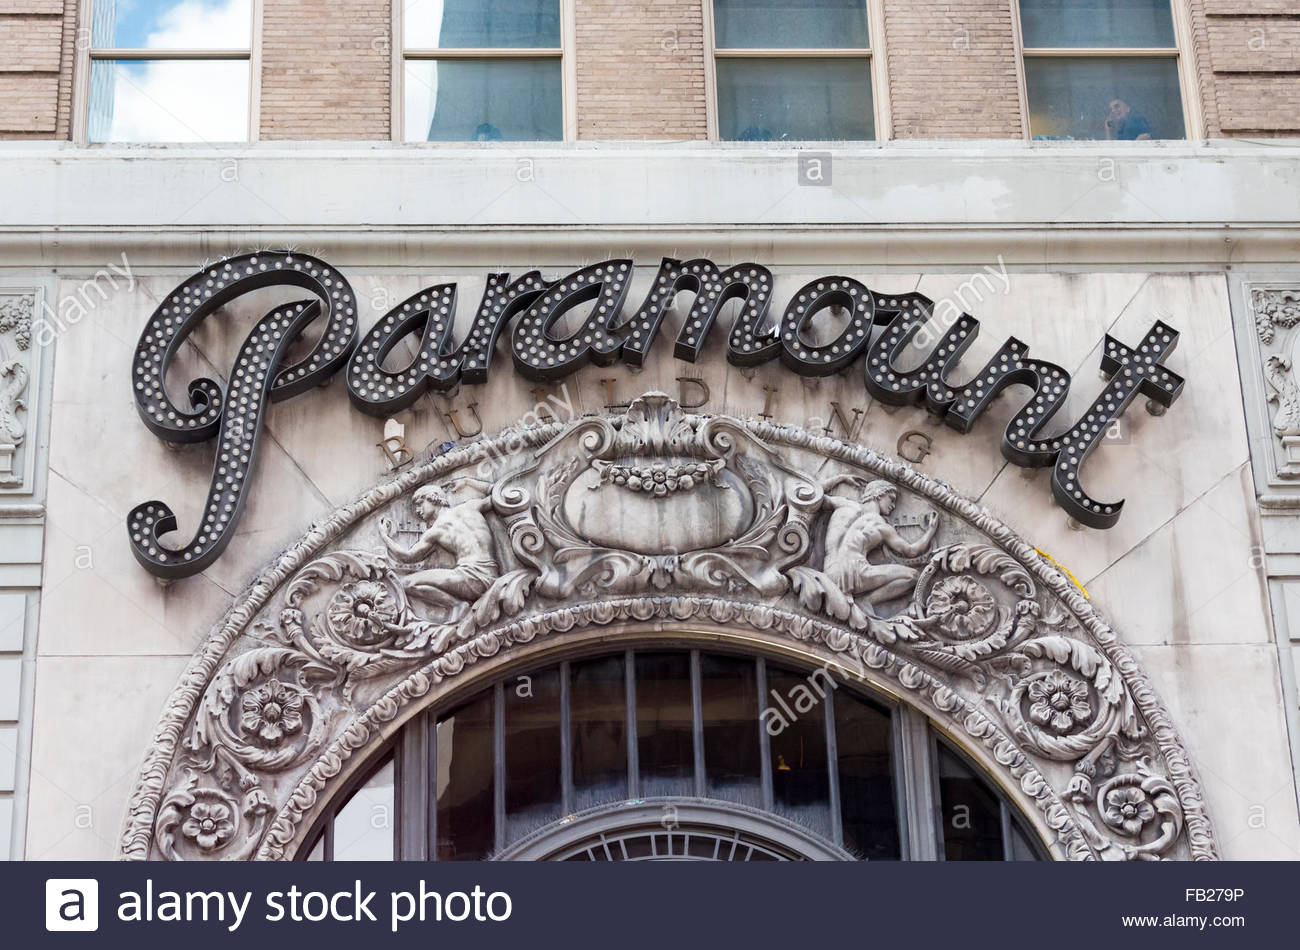 Paramount Studios Sign  1501 Broadway, also known as the Paramount Building, is a 33-story, 391-foot office building - Stock Image